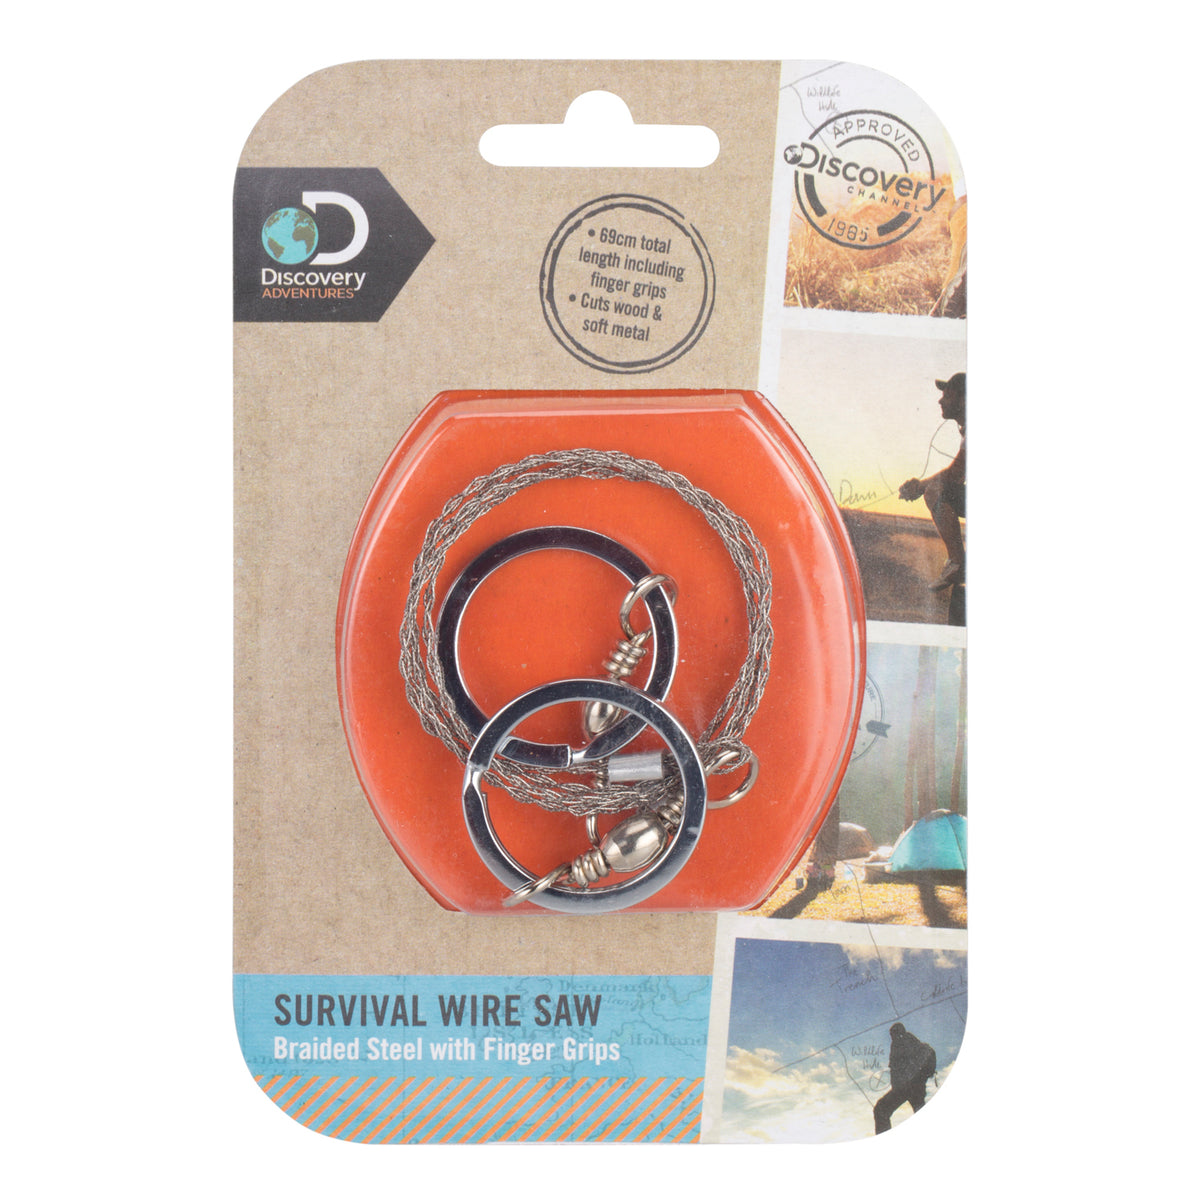 Discovery Adventures Survival Wire Saw